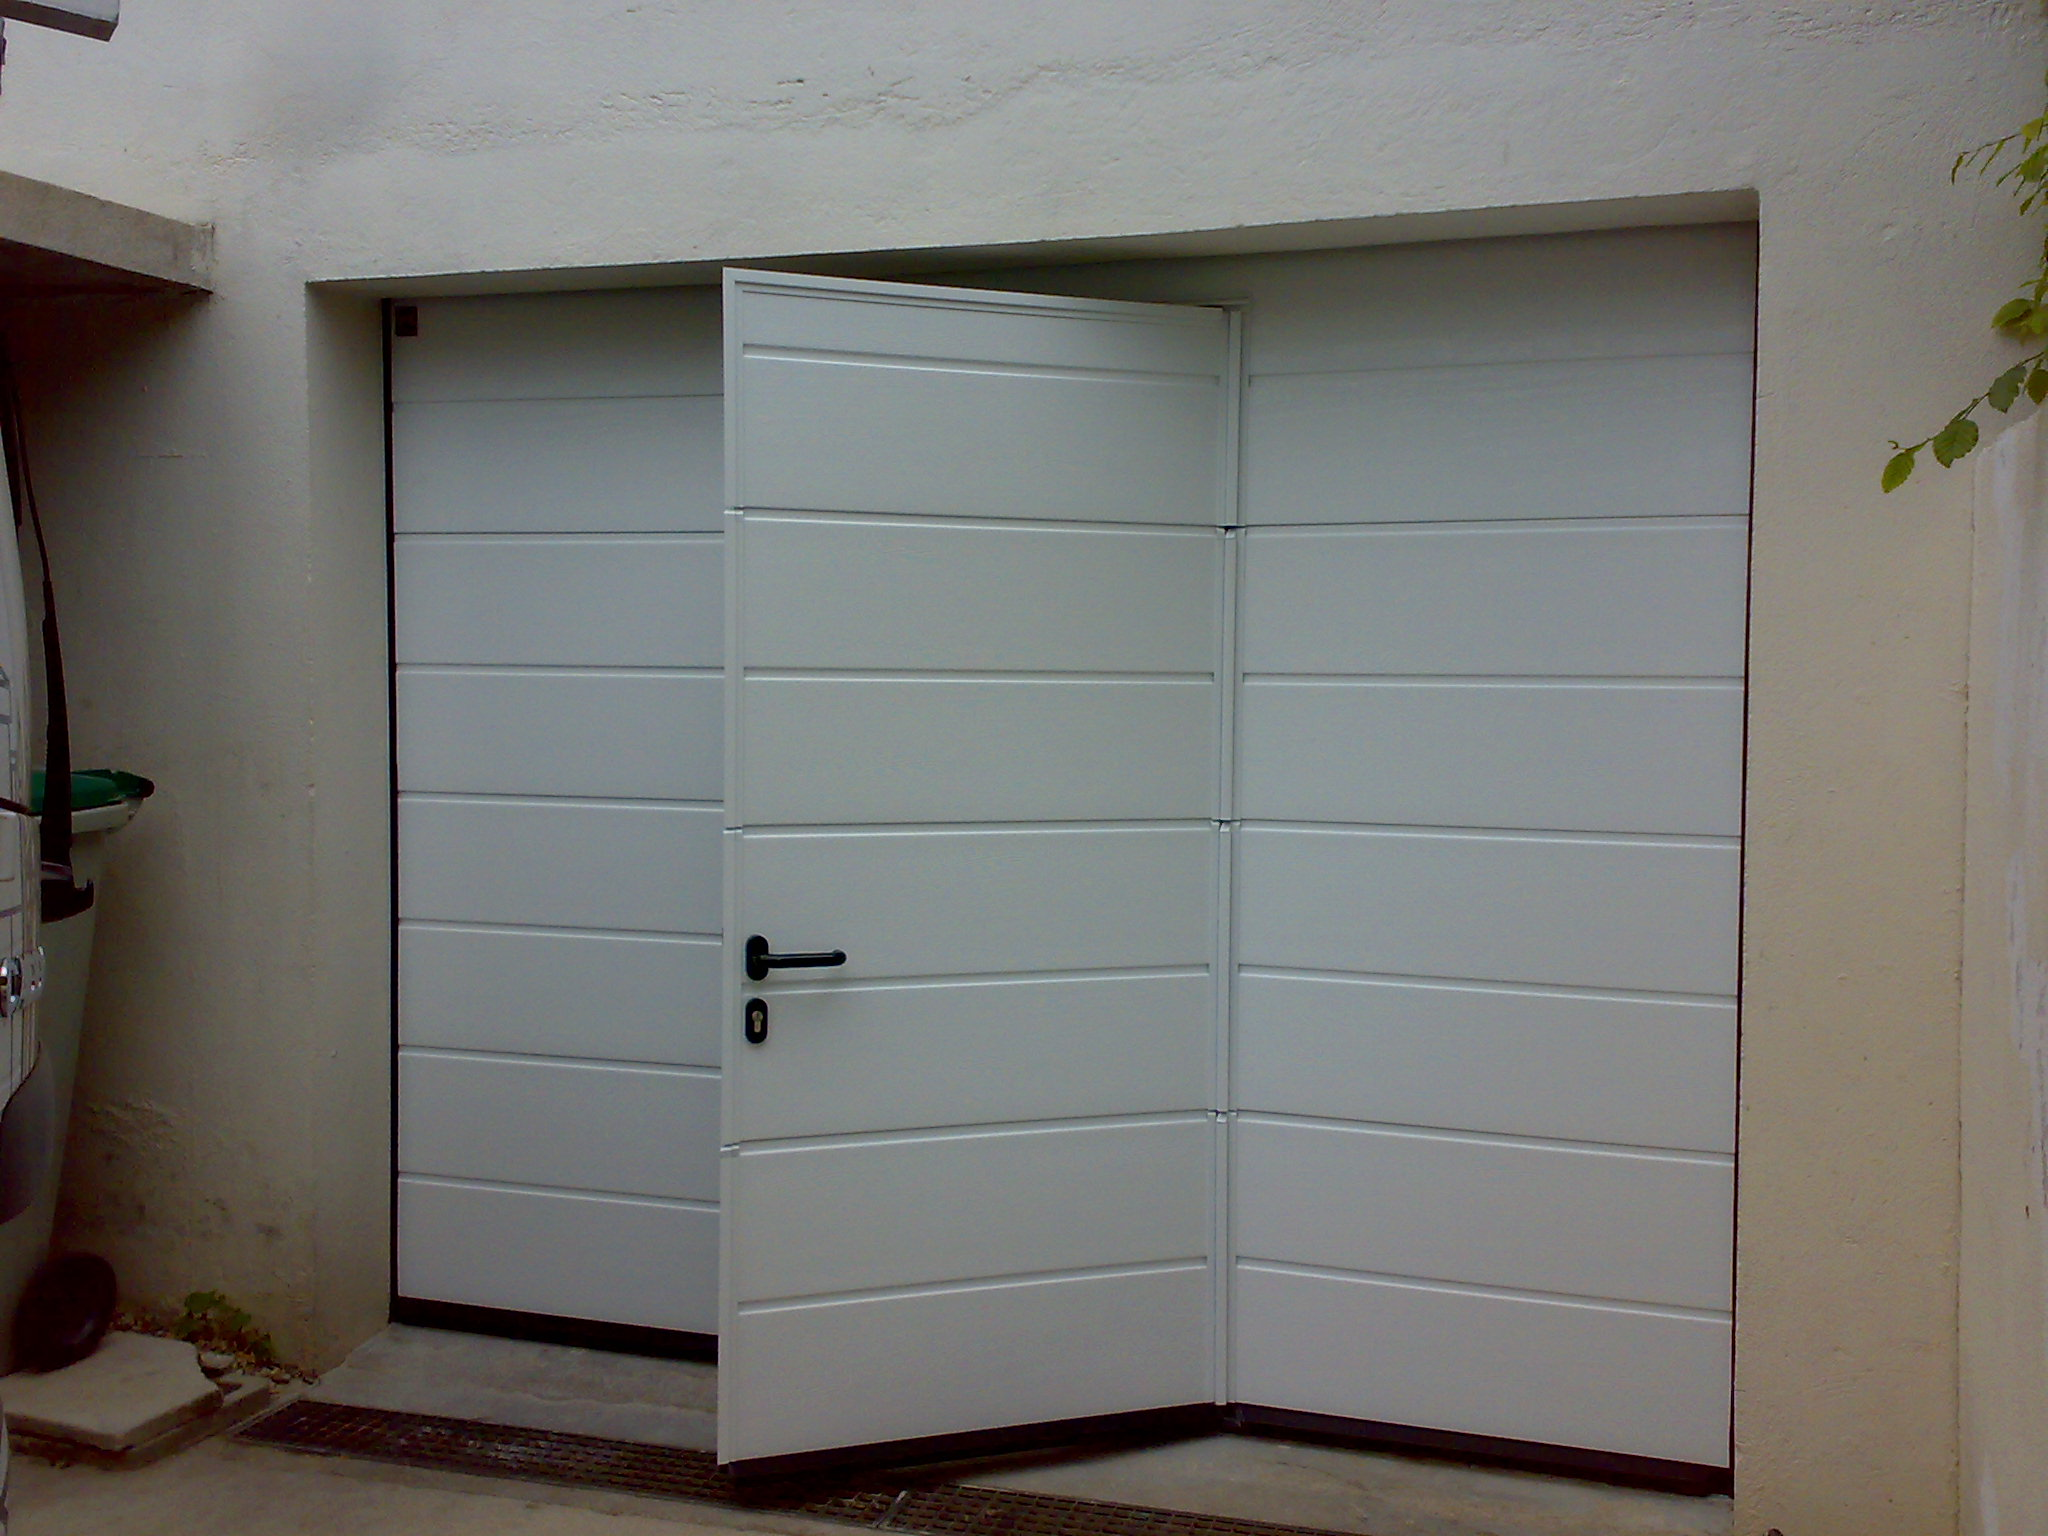 Portes de garage ab fermetures porte de garage for Porte de garage enroulable hormann prix